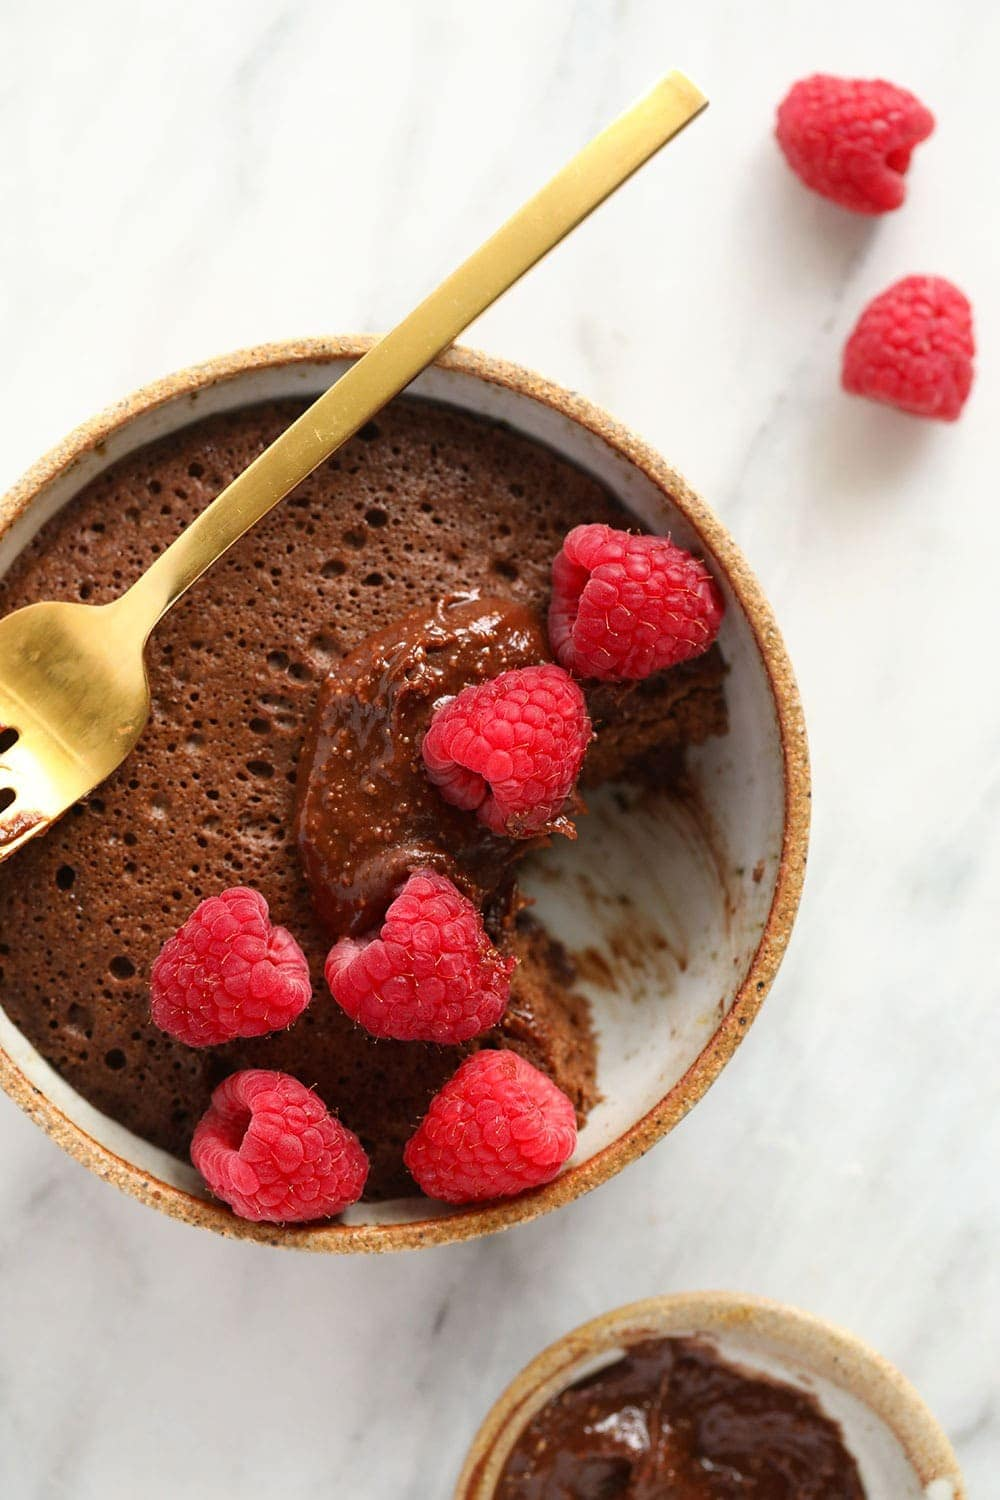 single-serve chocolate mug cake with a bite taken out of it and topped with delicious fresh raspberries